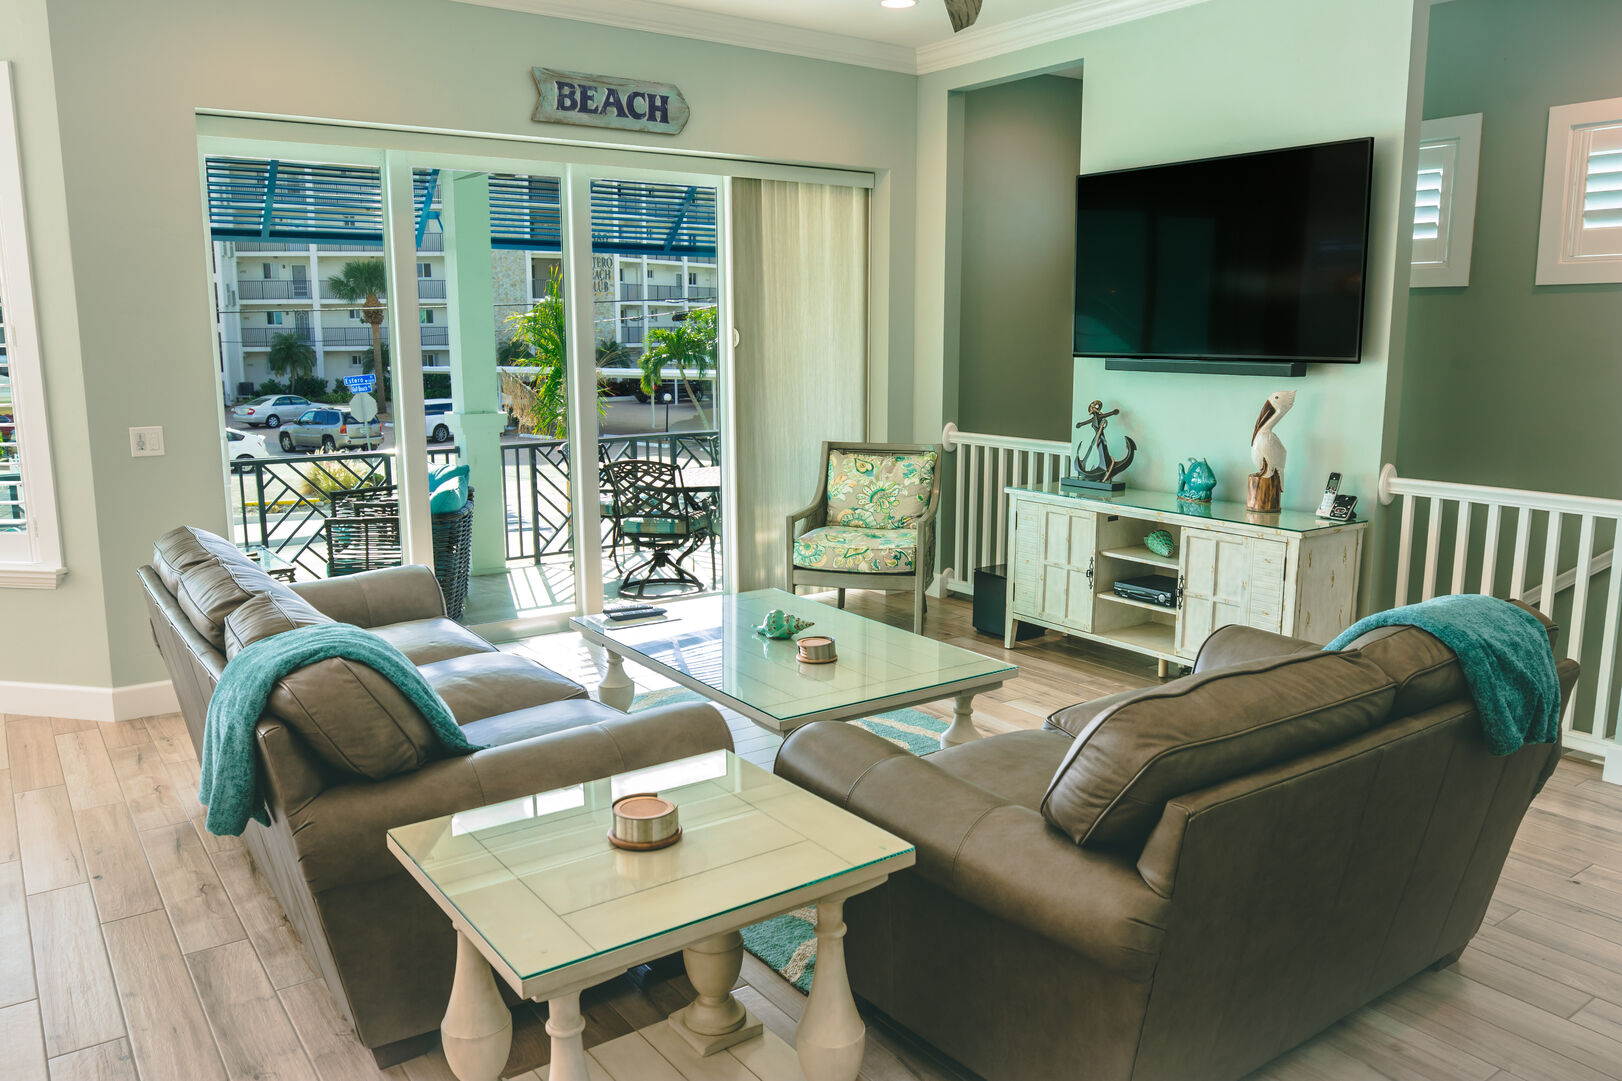 The living area of this Fort Myers Beach Rental, with two couches, a coffee table, and wall mounted tv.